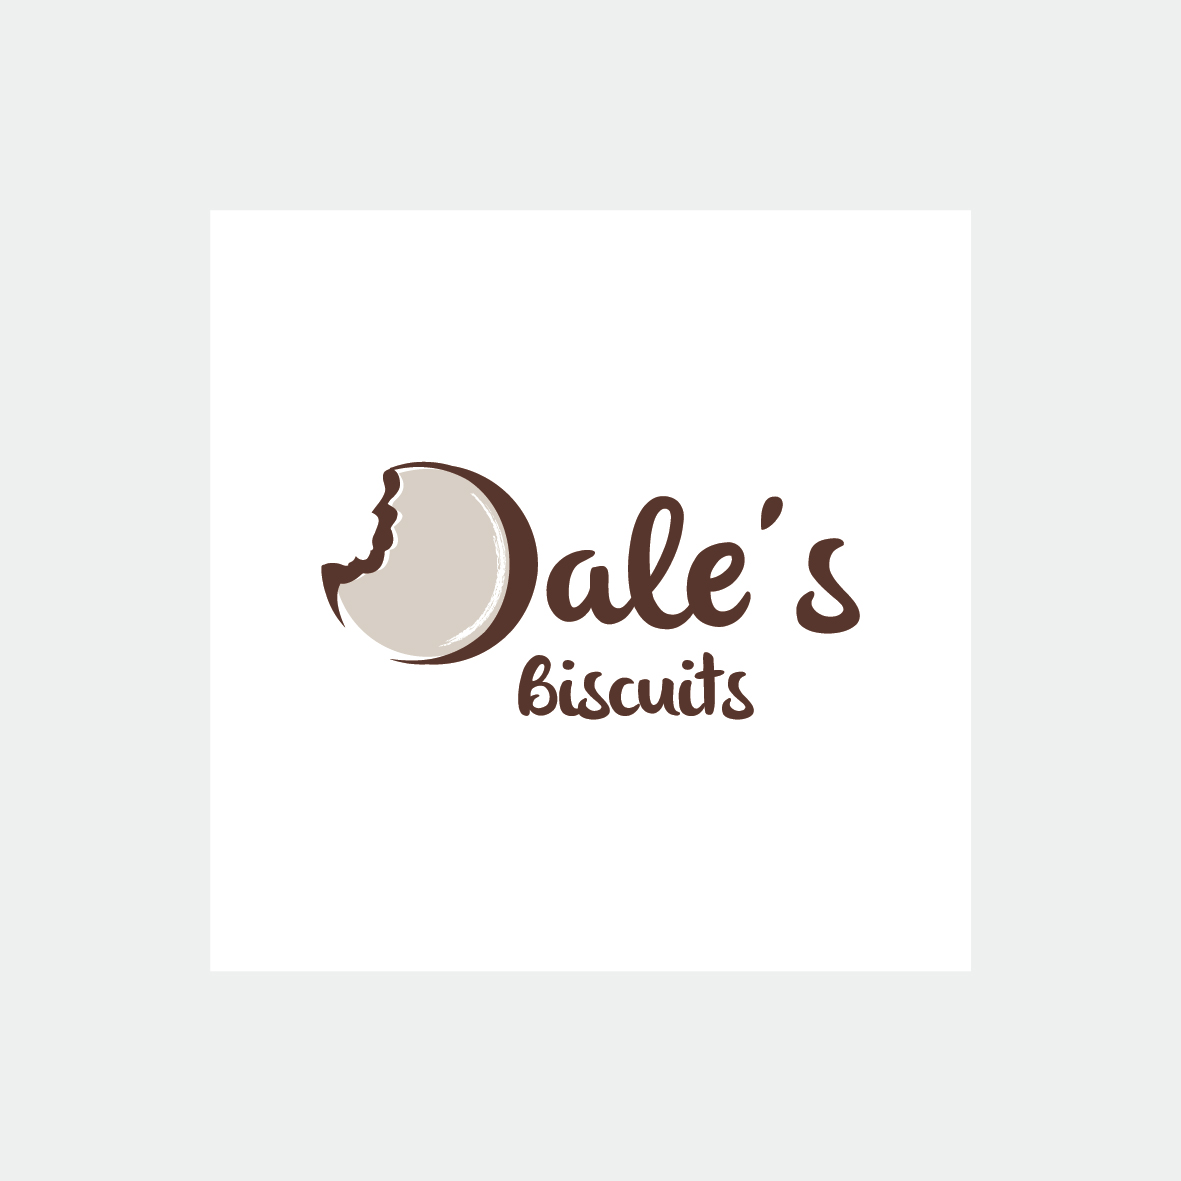 dale biscuits logo